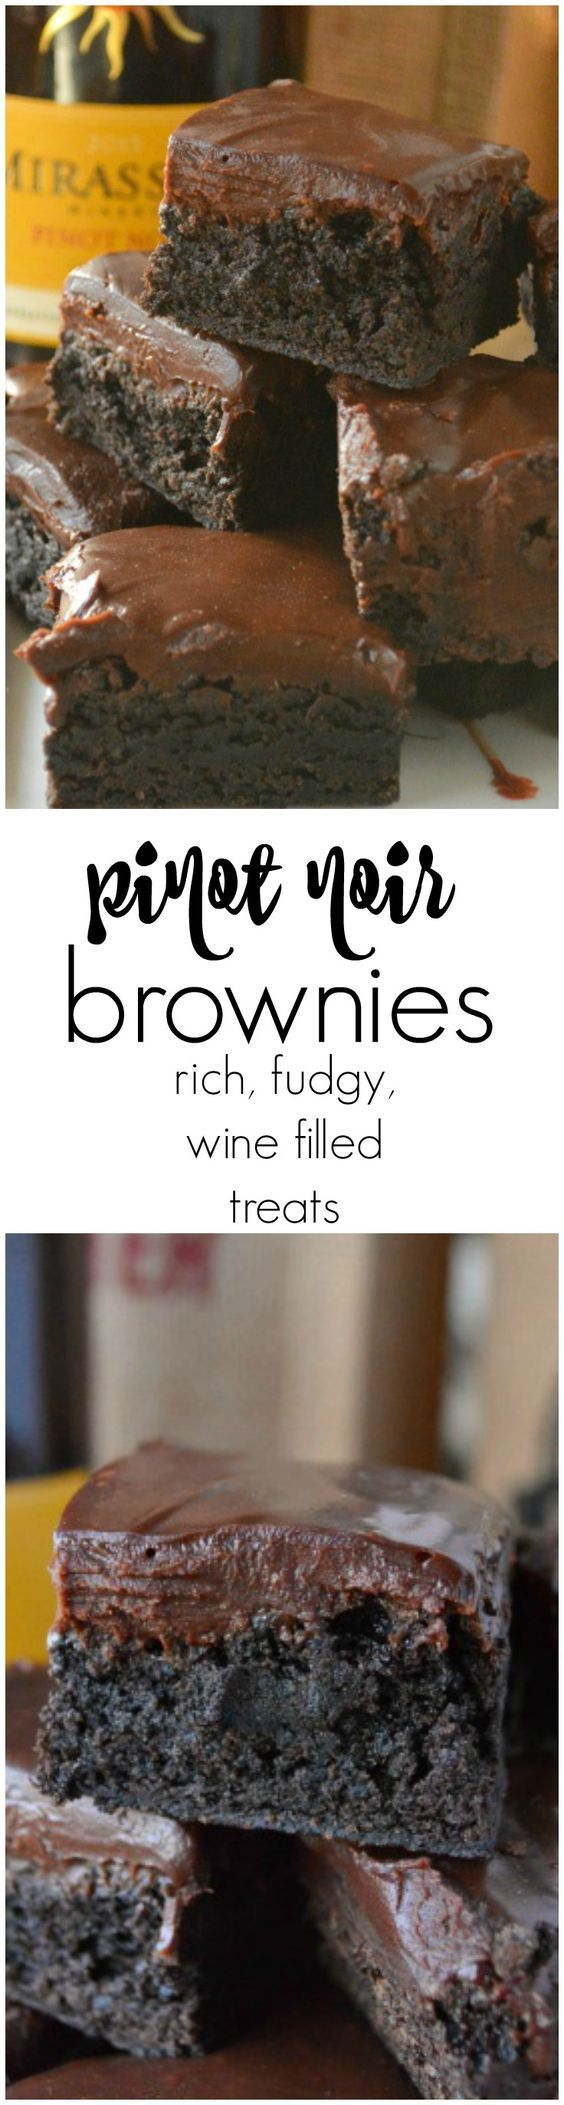 Pinot Noir Brownies are the richest, fudgiest brownies I have EVER made. They are dense, loaded with dark chocolate, and have the beautiful hint of cherries, strawberries, and red currants that Mirassou Pinot Noir offers.